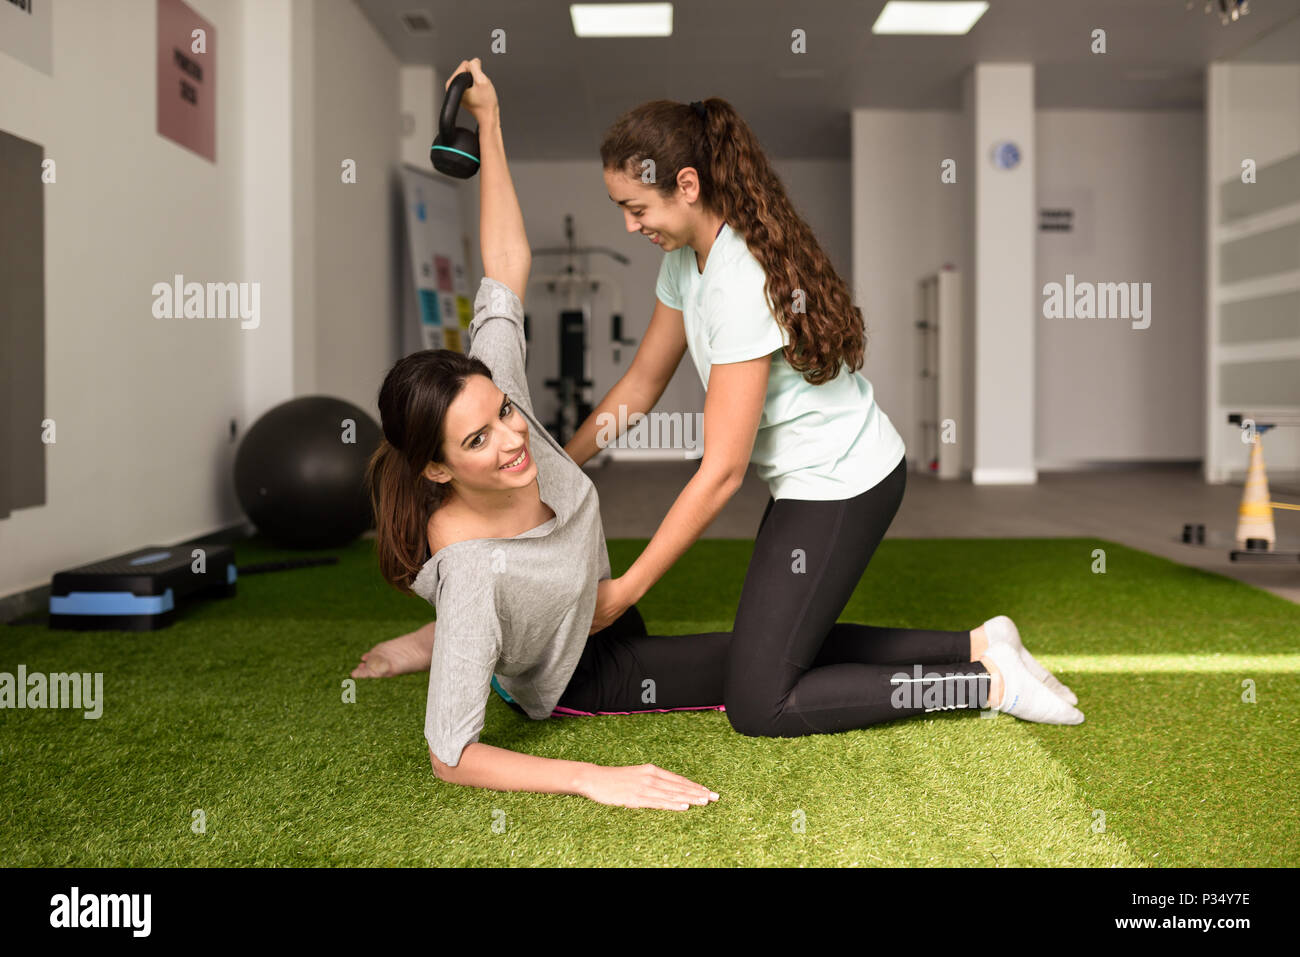 Physical therapist assisting young caucasian woman with exercise with dumbbell during rehabilitation in the gym at hospital. Female physiotherapist tr - Stock Image